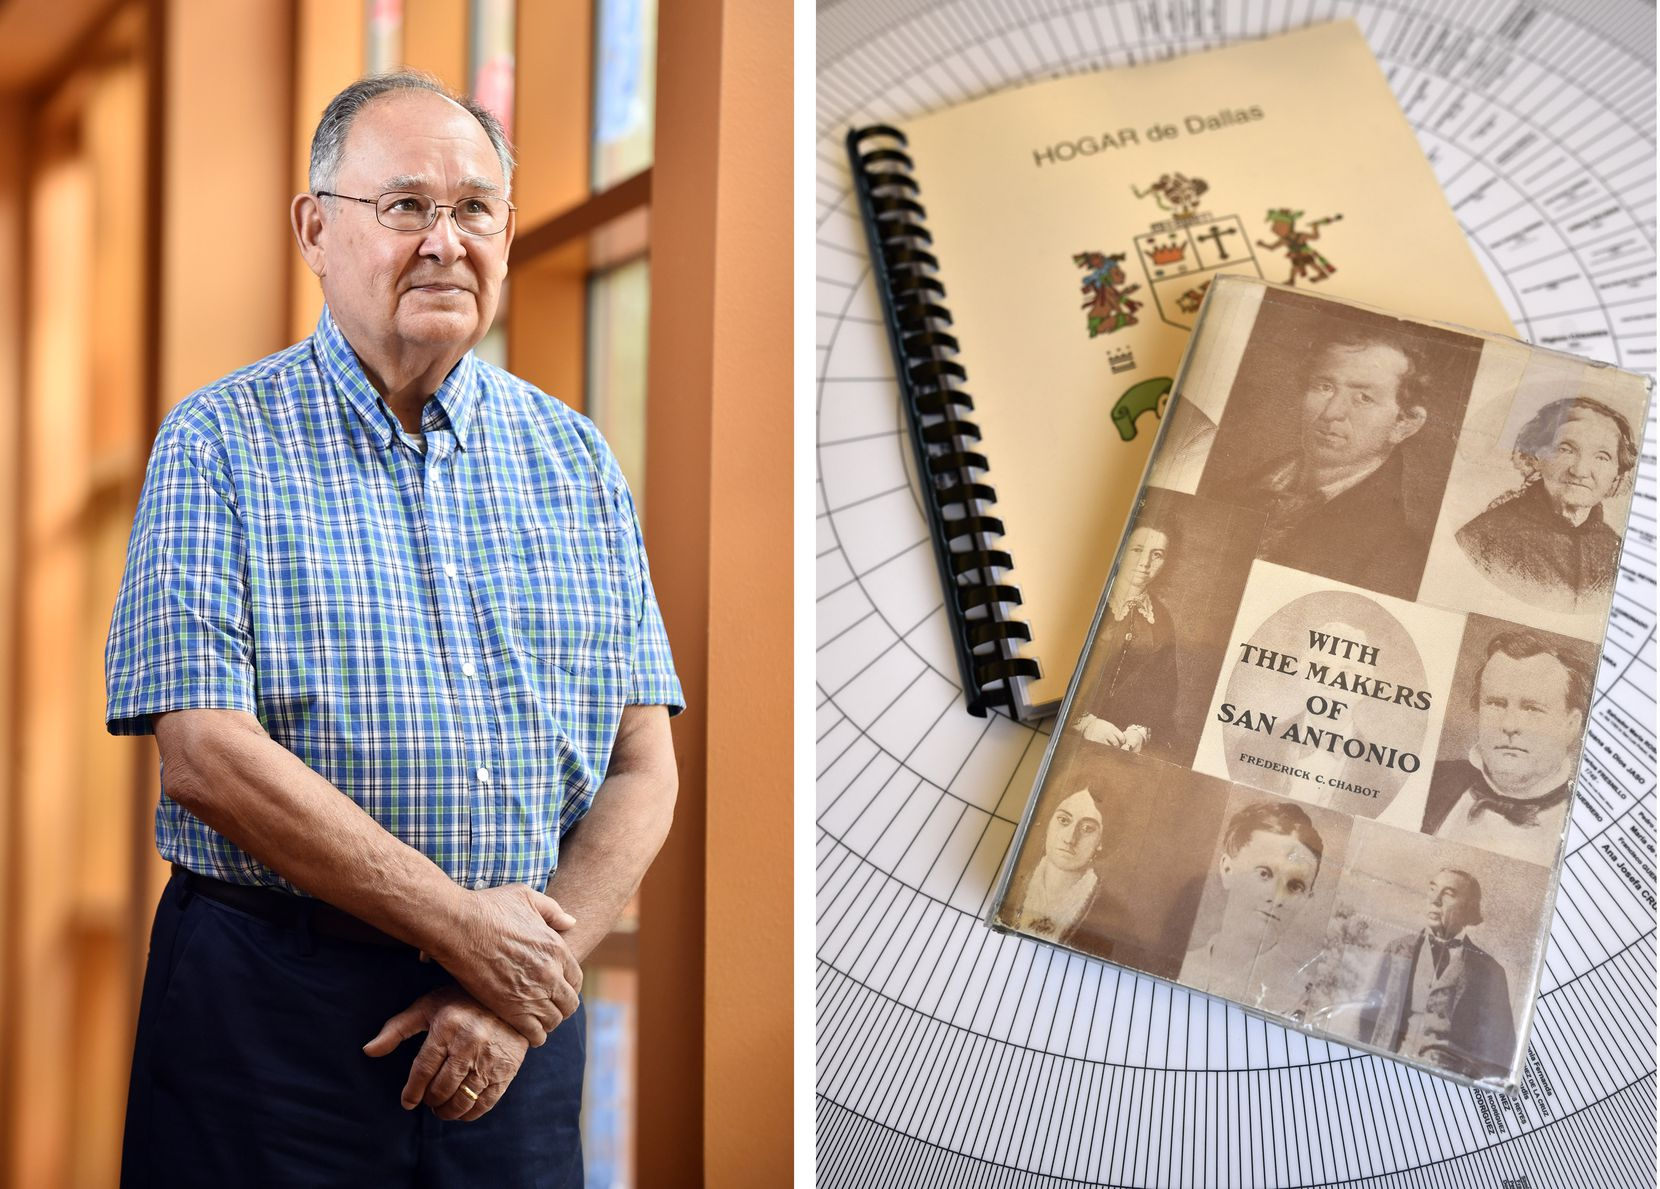 Above left: Oscar Ramirez was surprised to run across distant relatives at a HOGAR meeting. Above right: Armed with the book With the Makers of San Antonio and HOGAR's annual journal, descendants may fill in slots on their circular family trees.